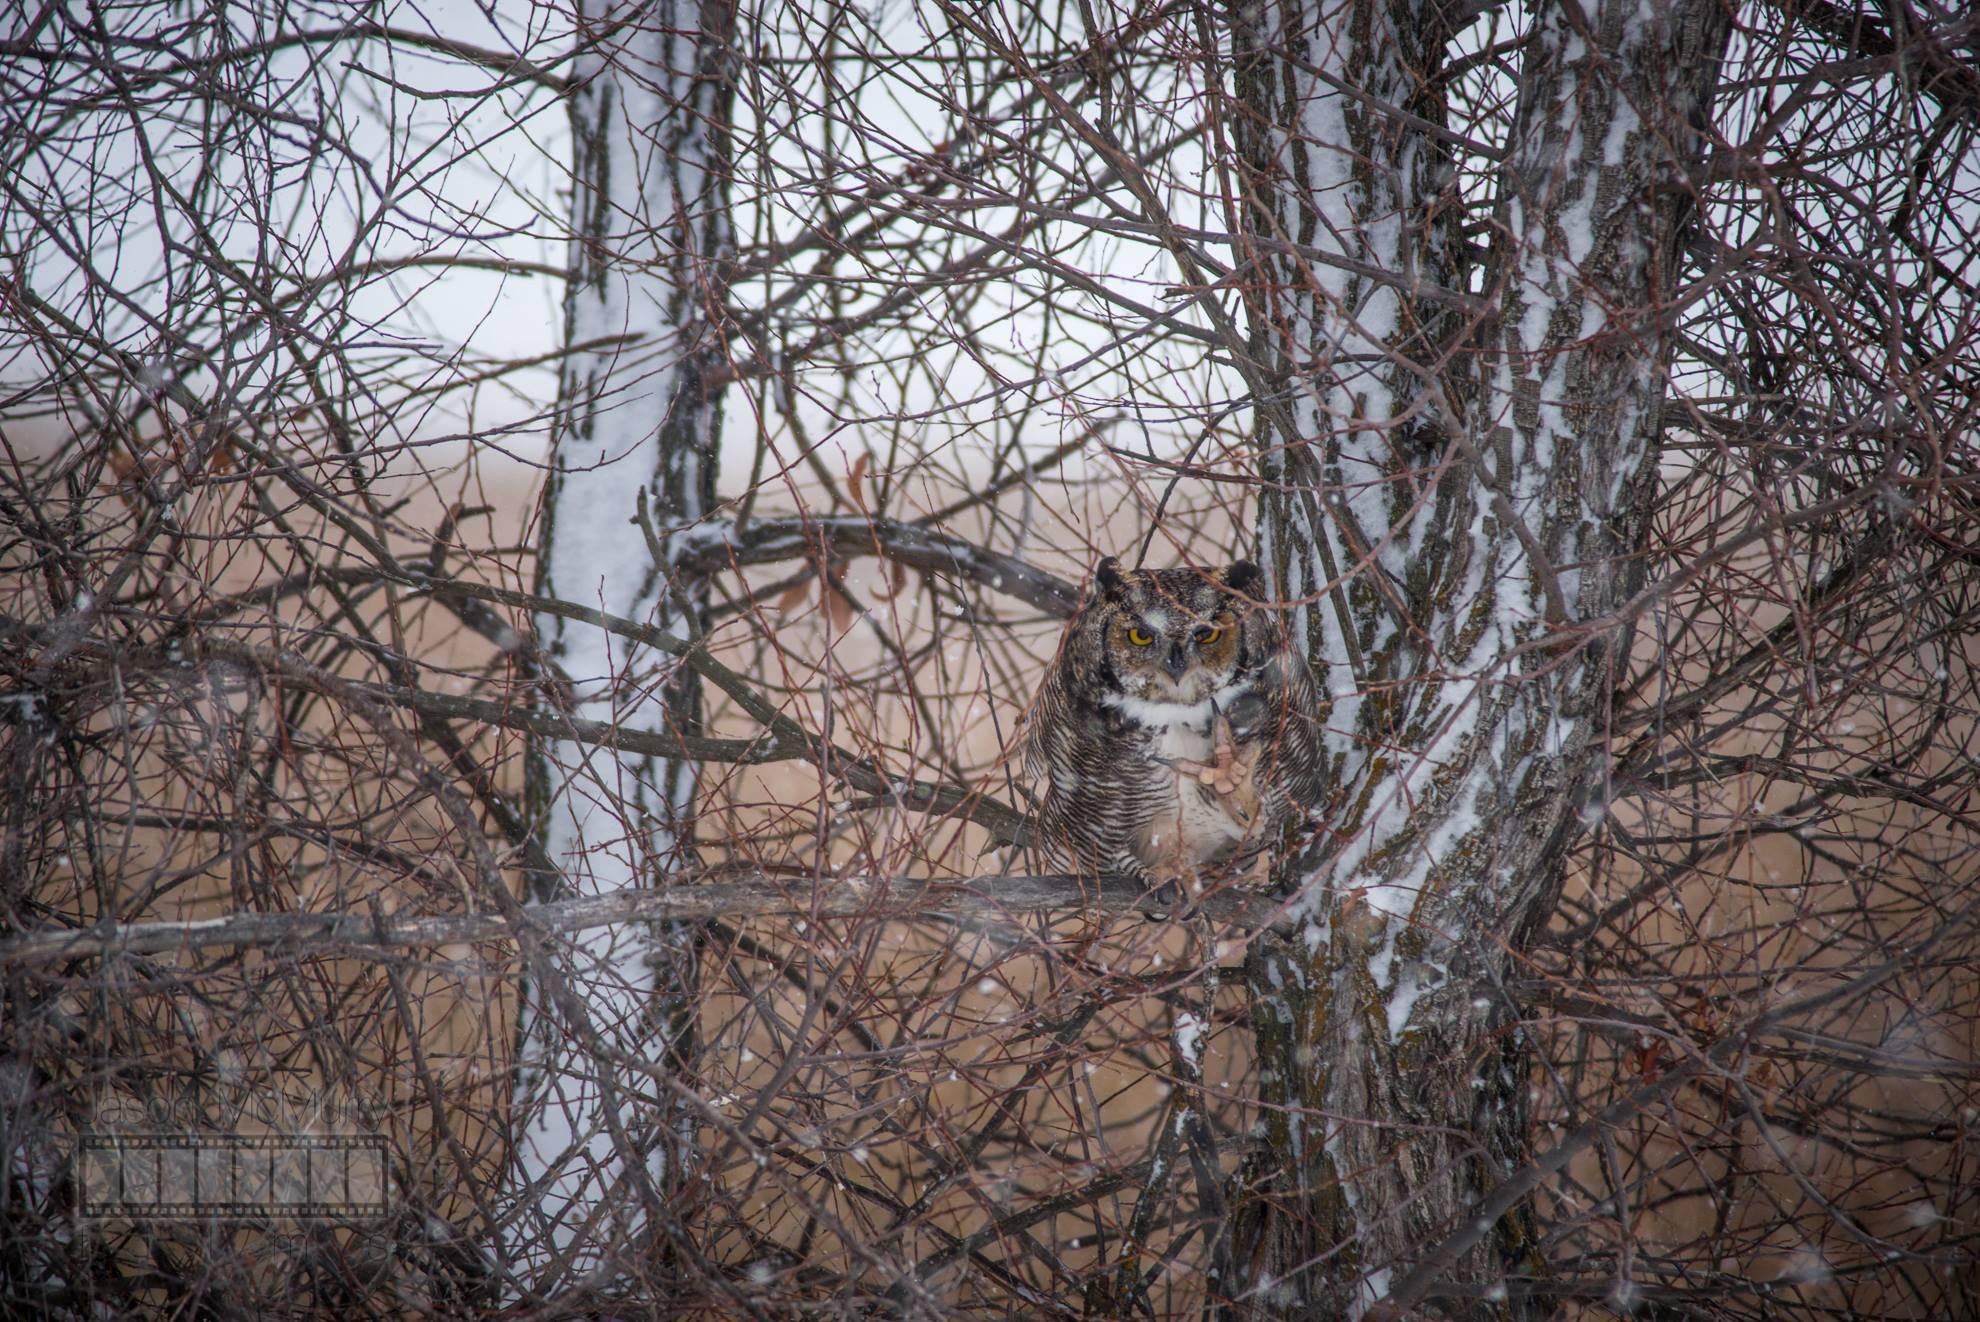 A Great Horned Owl sits calmly camoflauged in a tree.Image by  Jason McMurry .